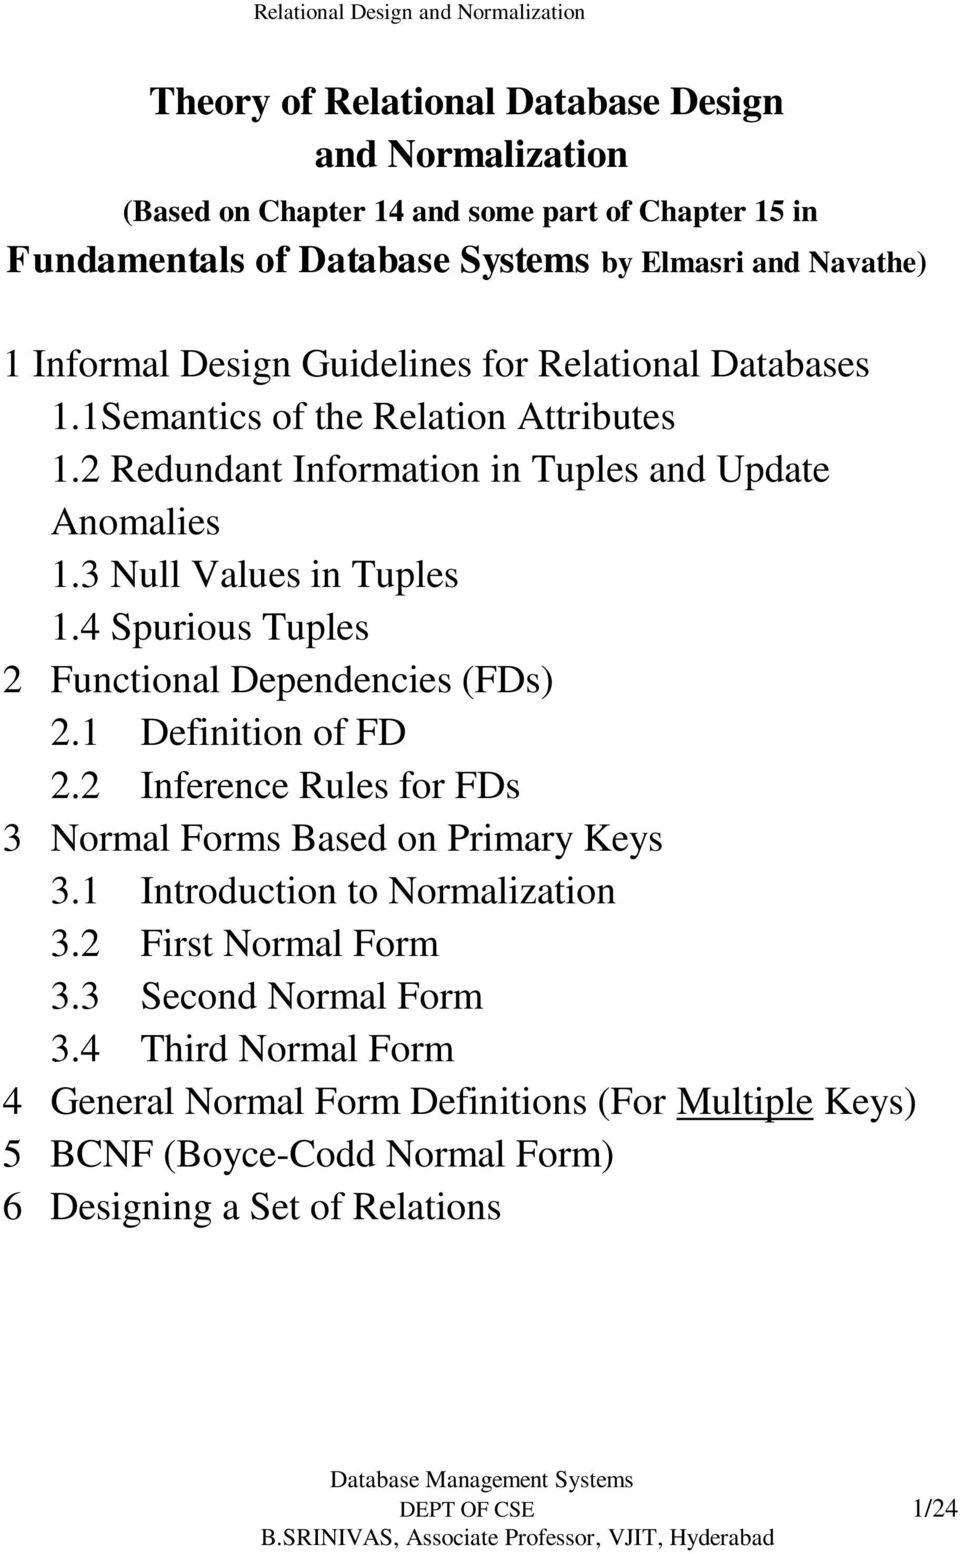 4 Spurious Tuples 2 Functional Dependencies (FDs) 2.1 Definition of FD 2.2 Inference Rules for FDs 3 Normal Forms Based on Primary Keys 3.1 Introduction to Normalization 3.